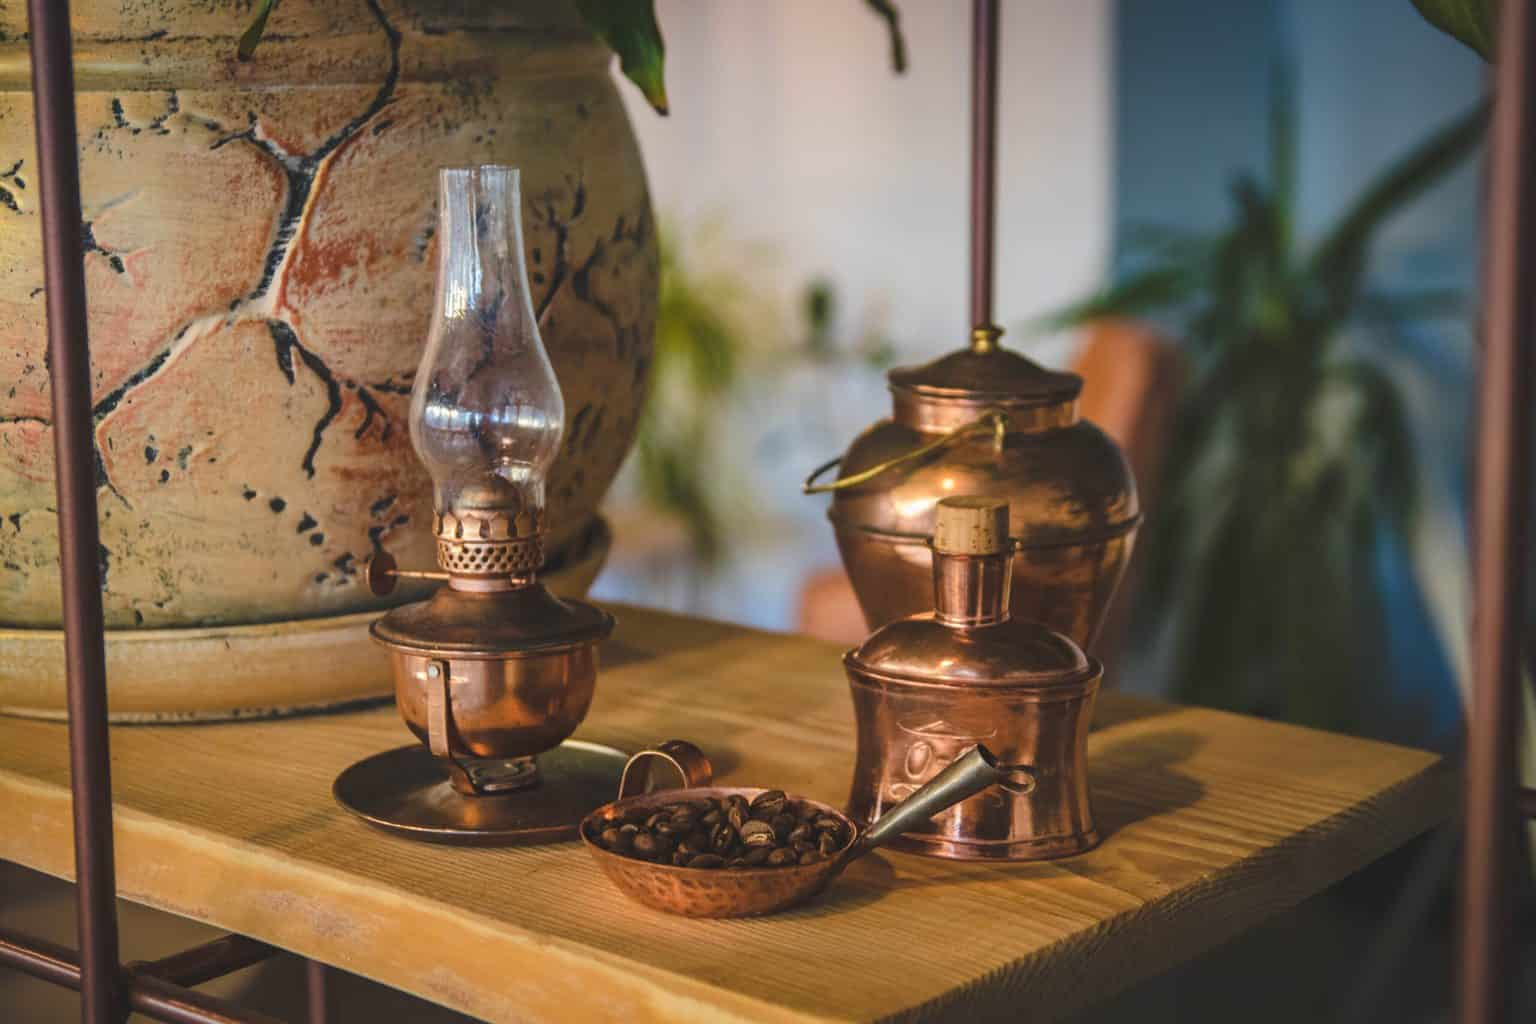 Brass lamp and pots